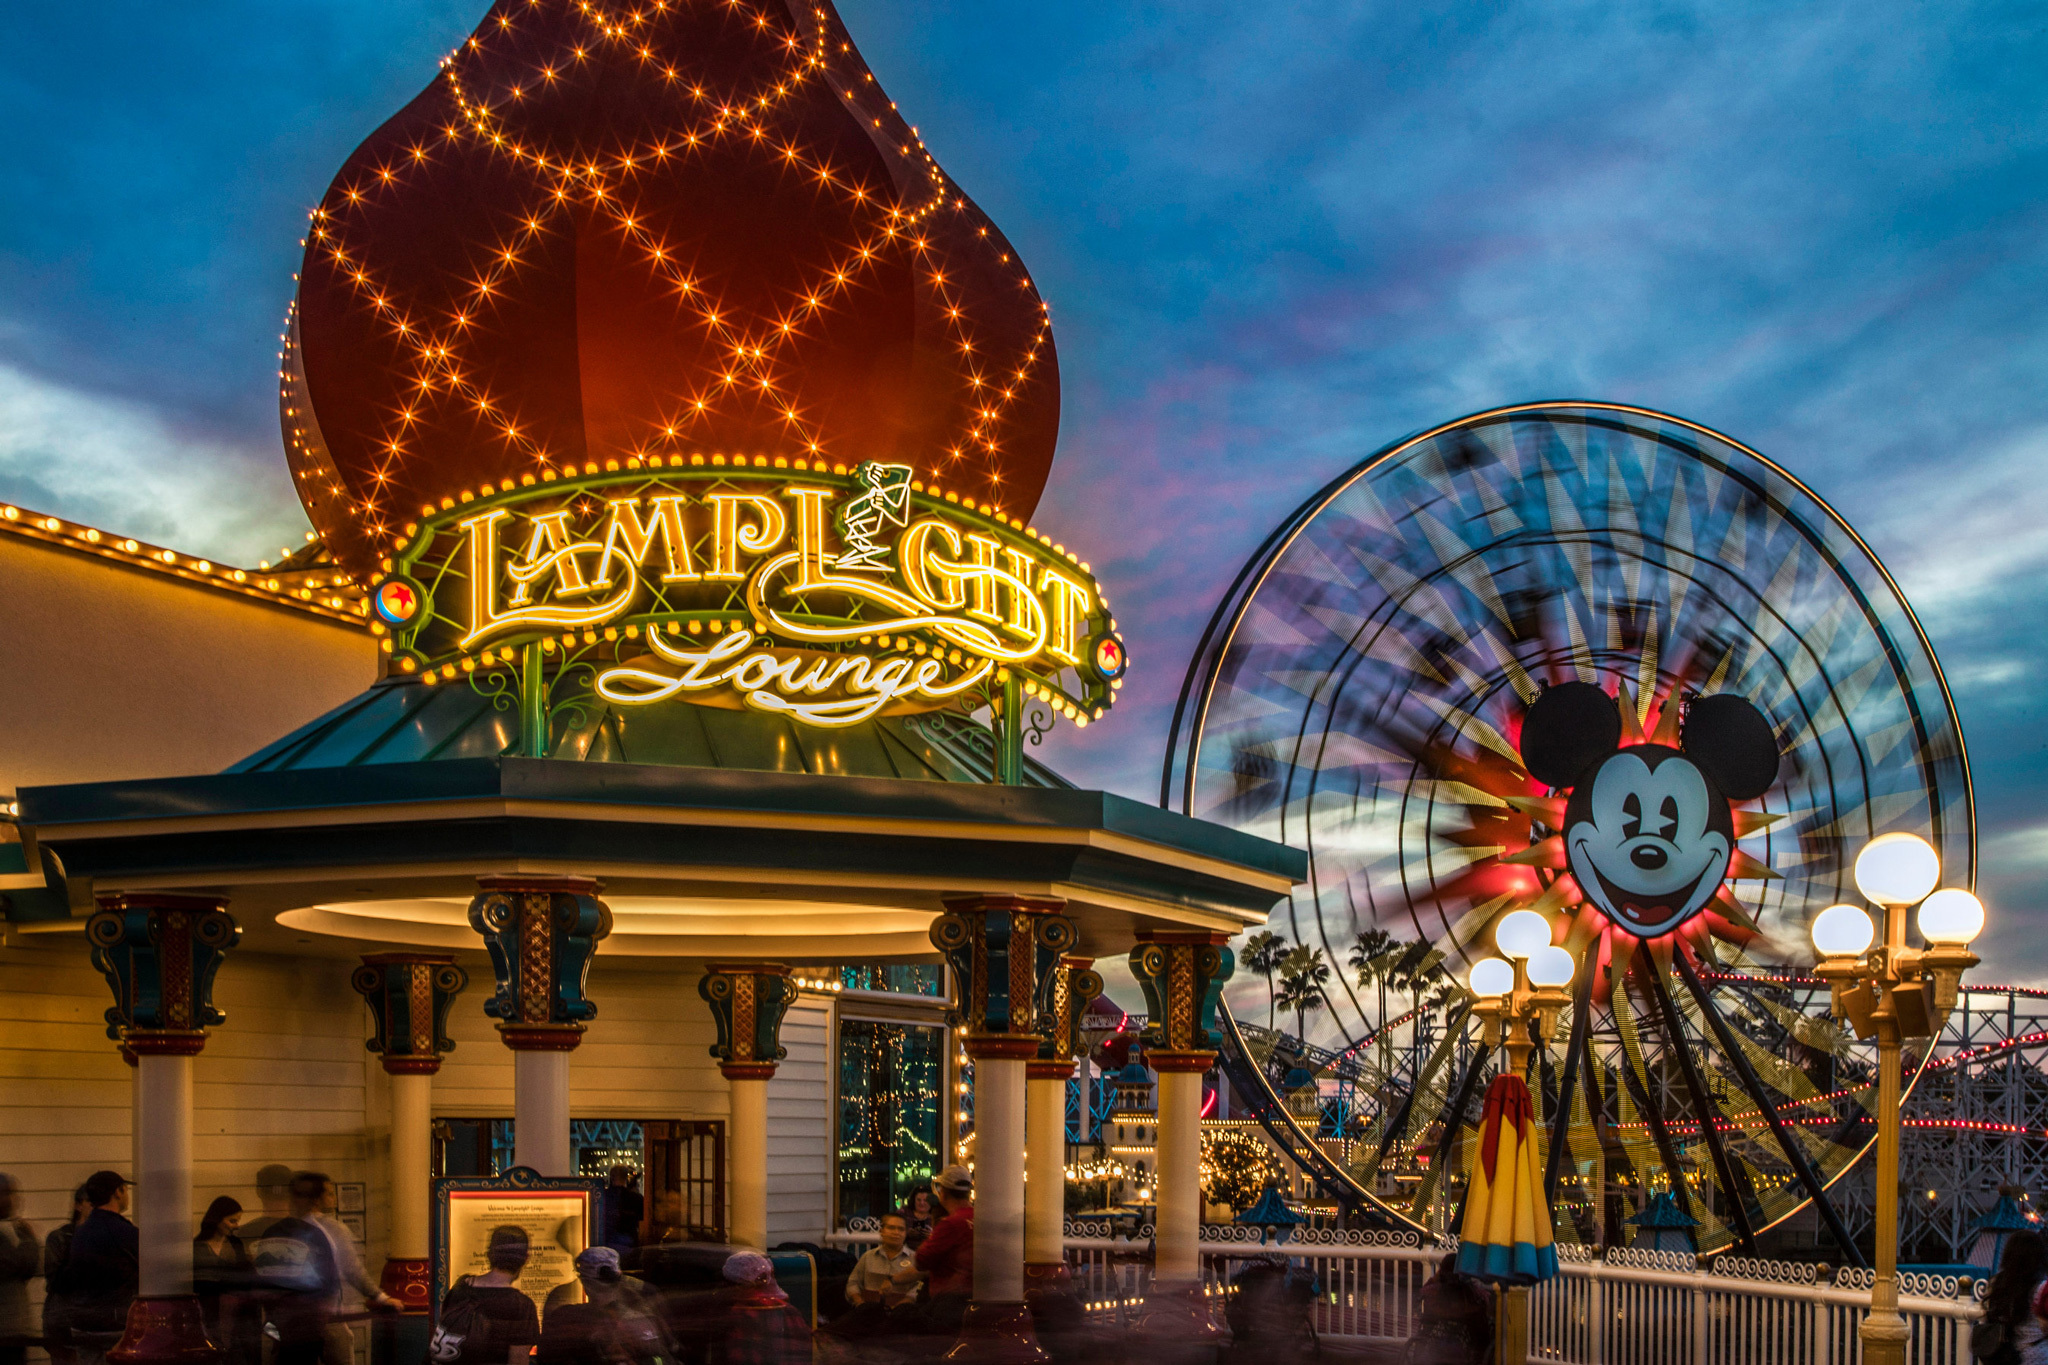 25 Disneyland Rides That You Need To Go On Ranked